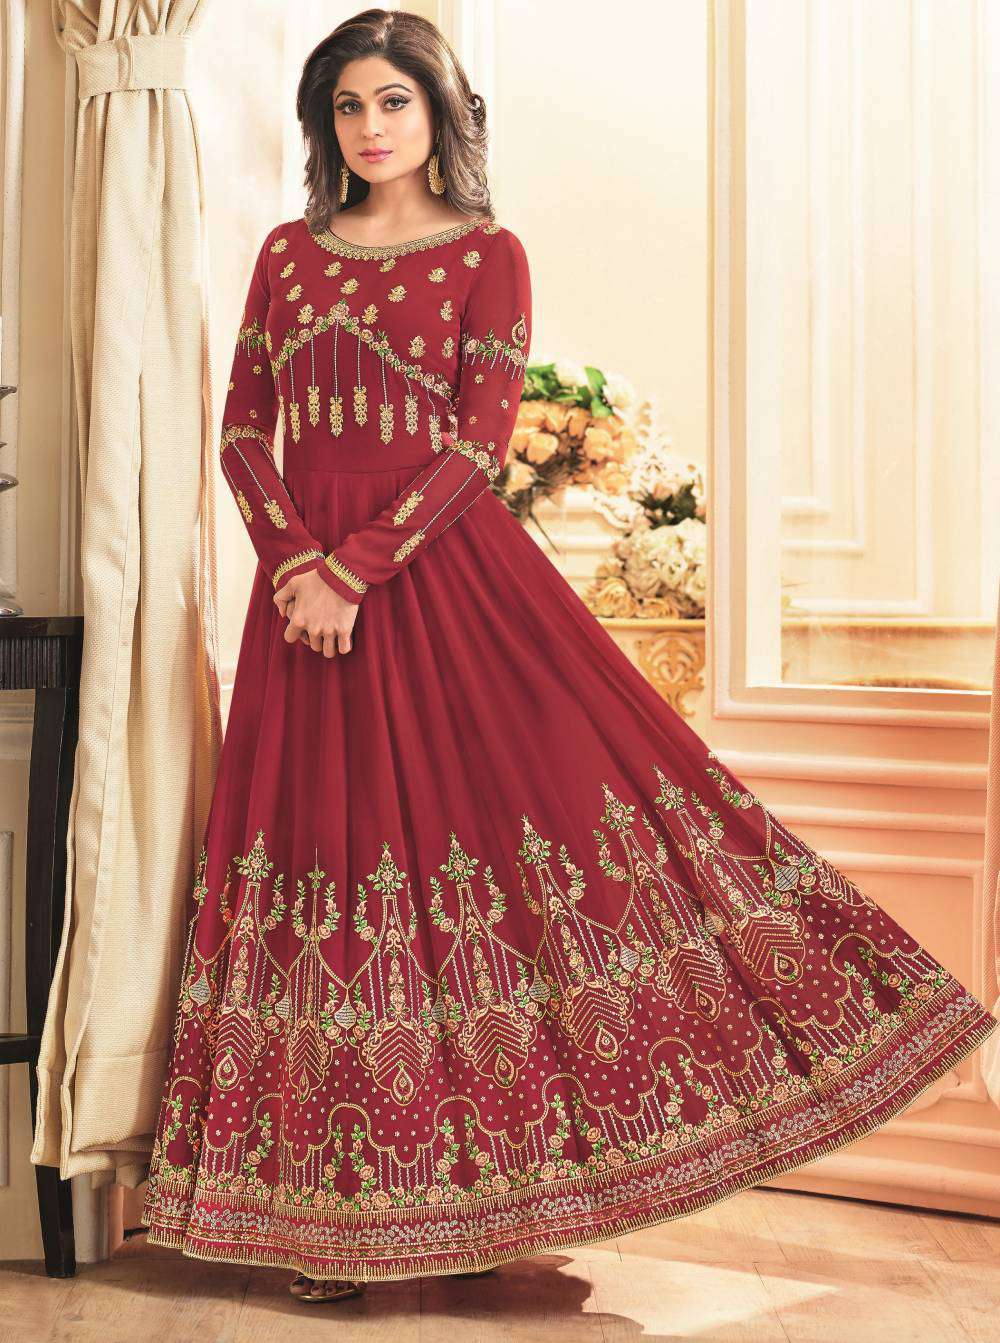 Red Gorgeous Georgette Festive Gown Dress Salwar Kameez MYSK-1613